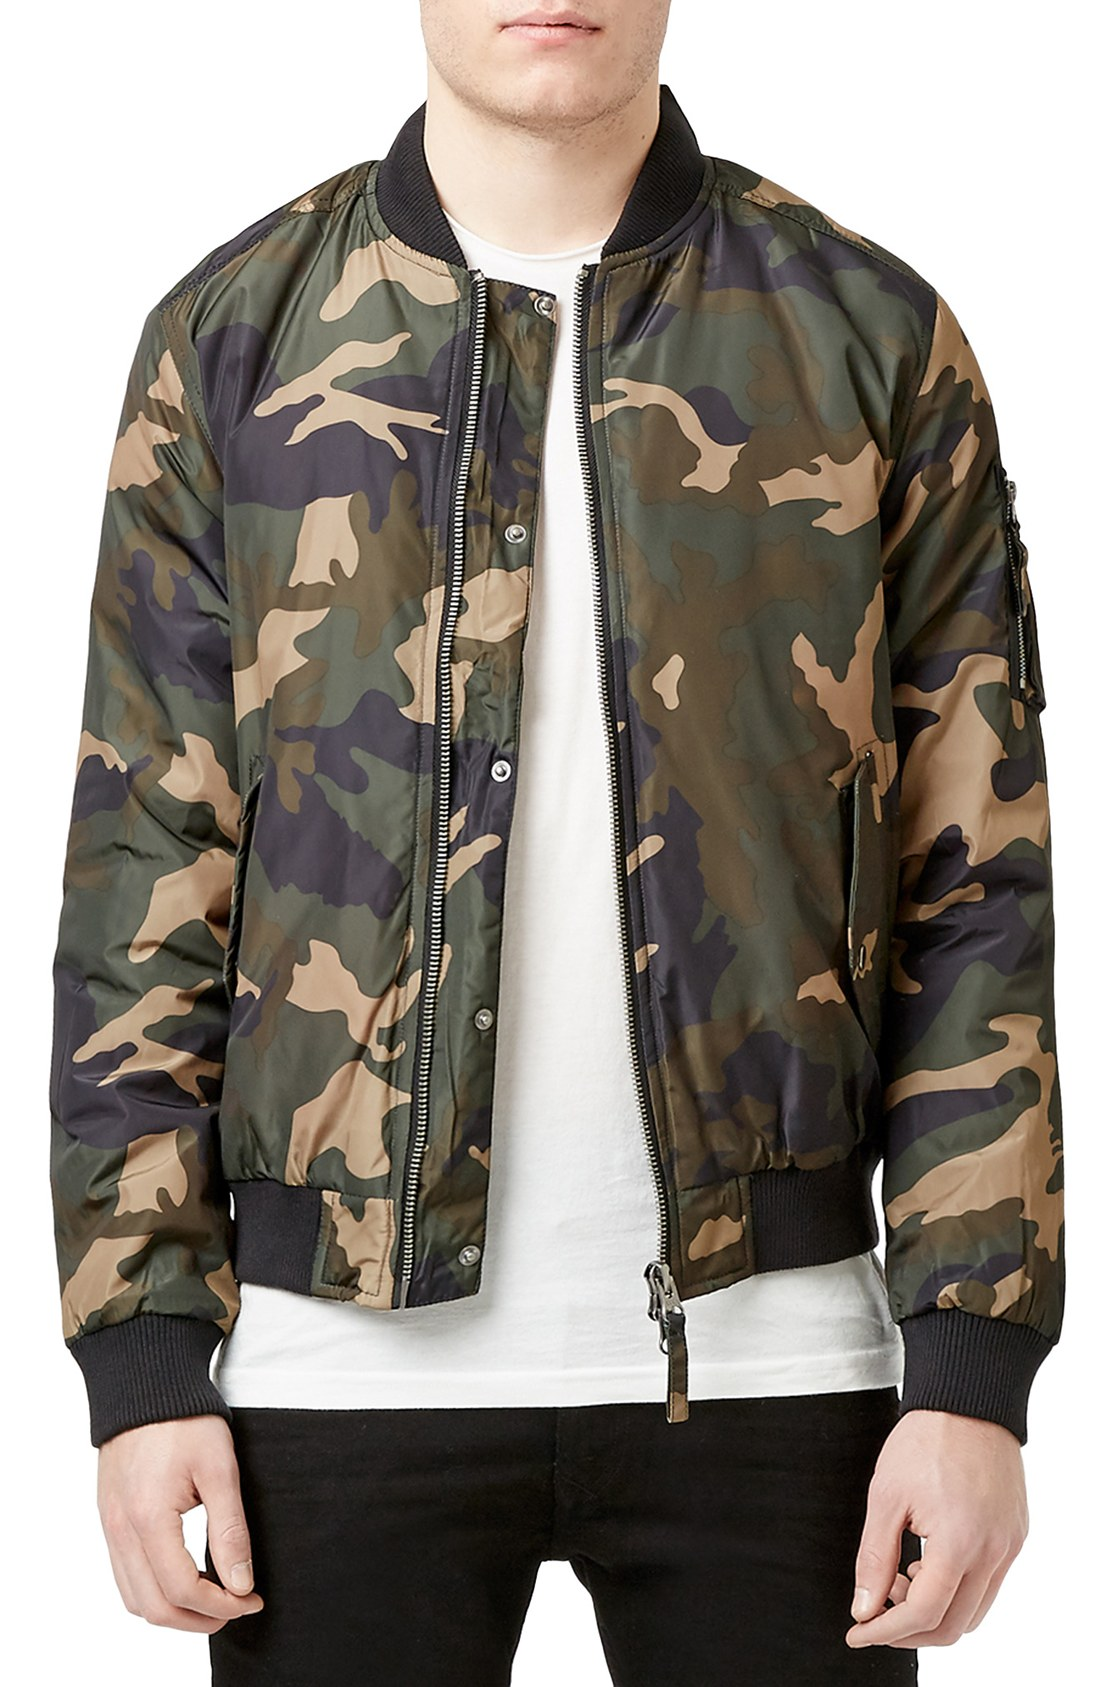 Army-1 How to Wear Bomber Jacket Men-18 Outfits with Bomber Jackets